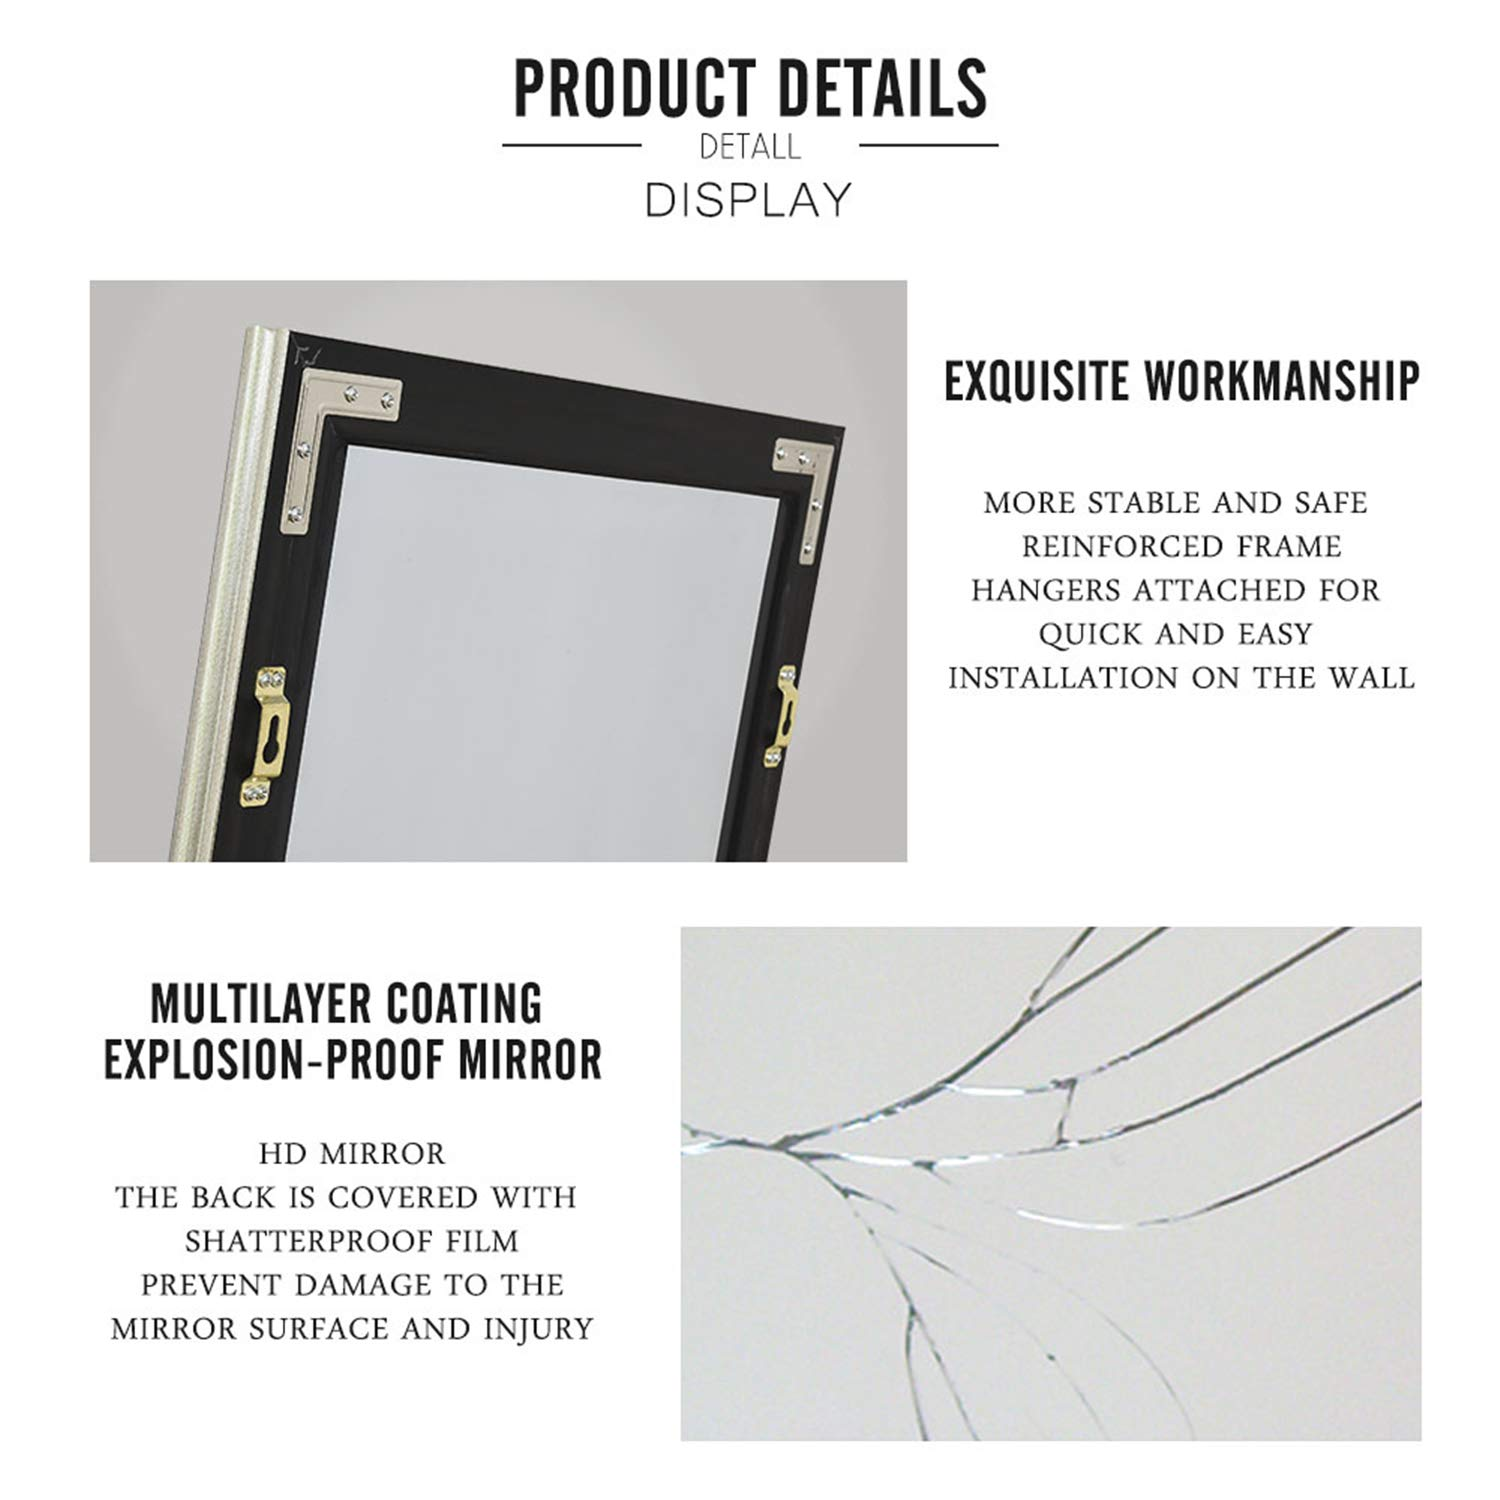 ZHOWI Floor Mirror Full Length Large Full Body Size Stand up Standing Wall Mounted Mirrors Bedroom Bathroom D/écor Wide Border PS Frame Black Coffee, 65x22in